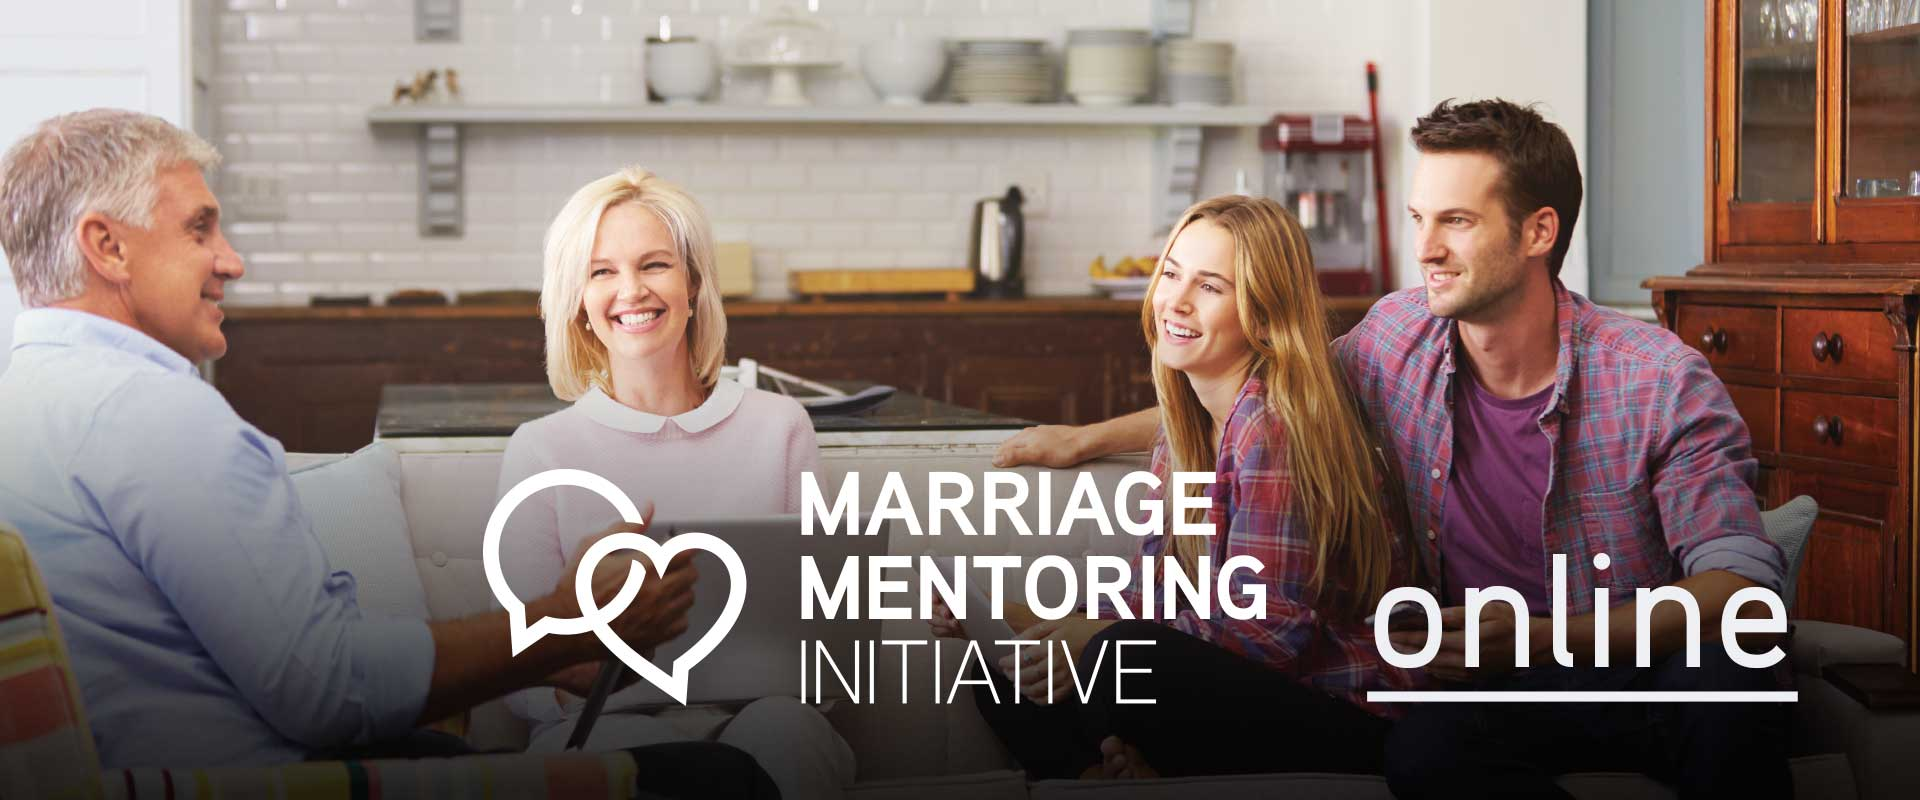 FamilyLife Canada Marriage Mentoring Training Online